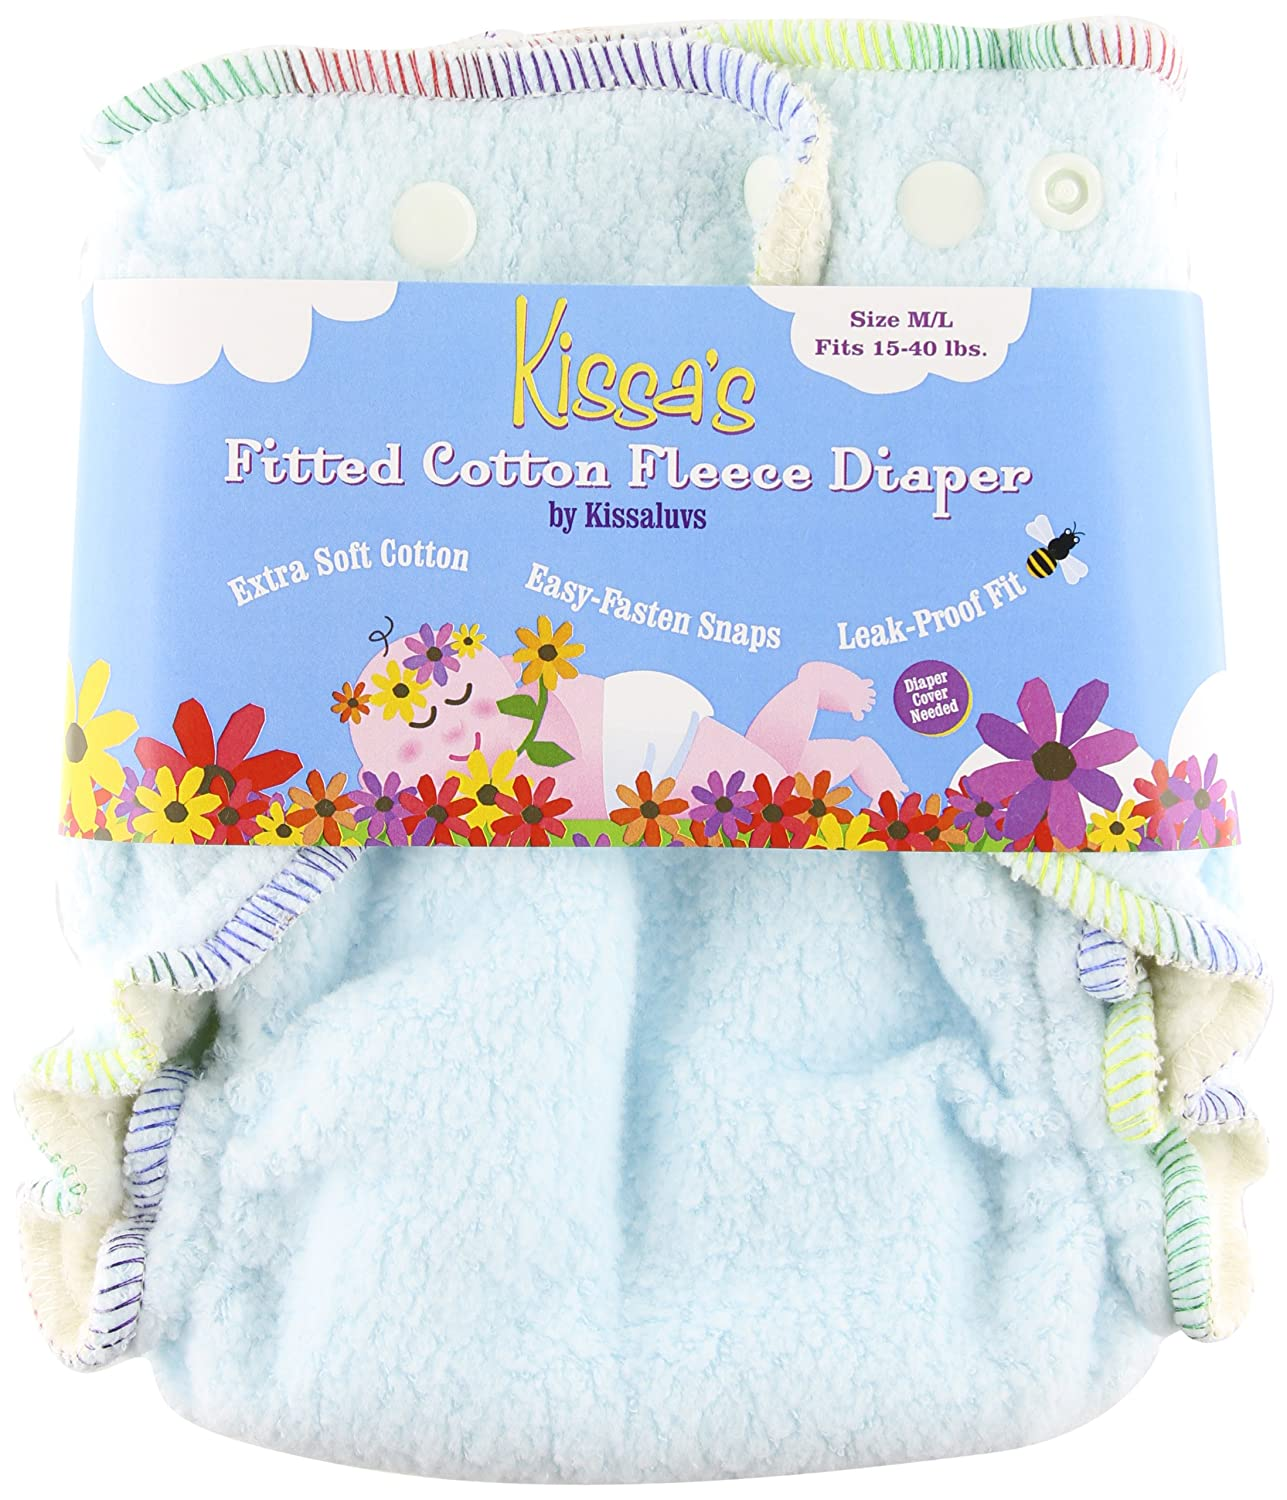 Kissa's Cotton Fleece Fitted Diaper, Sky Blue, 10-40 Pounds Kissaluvs wdmlc-blue